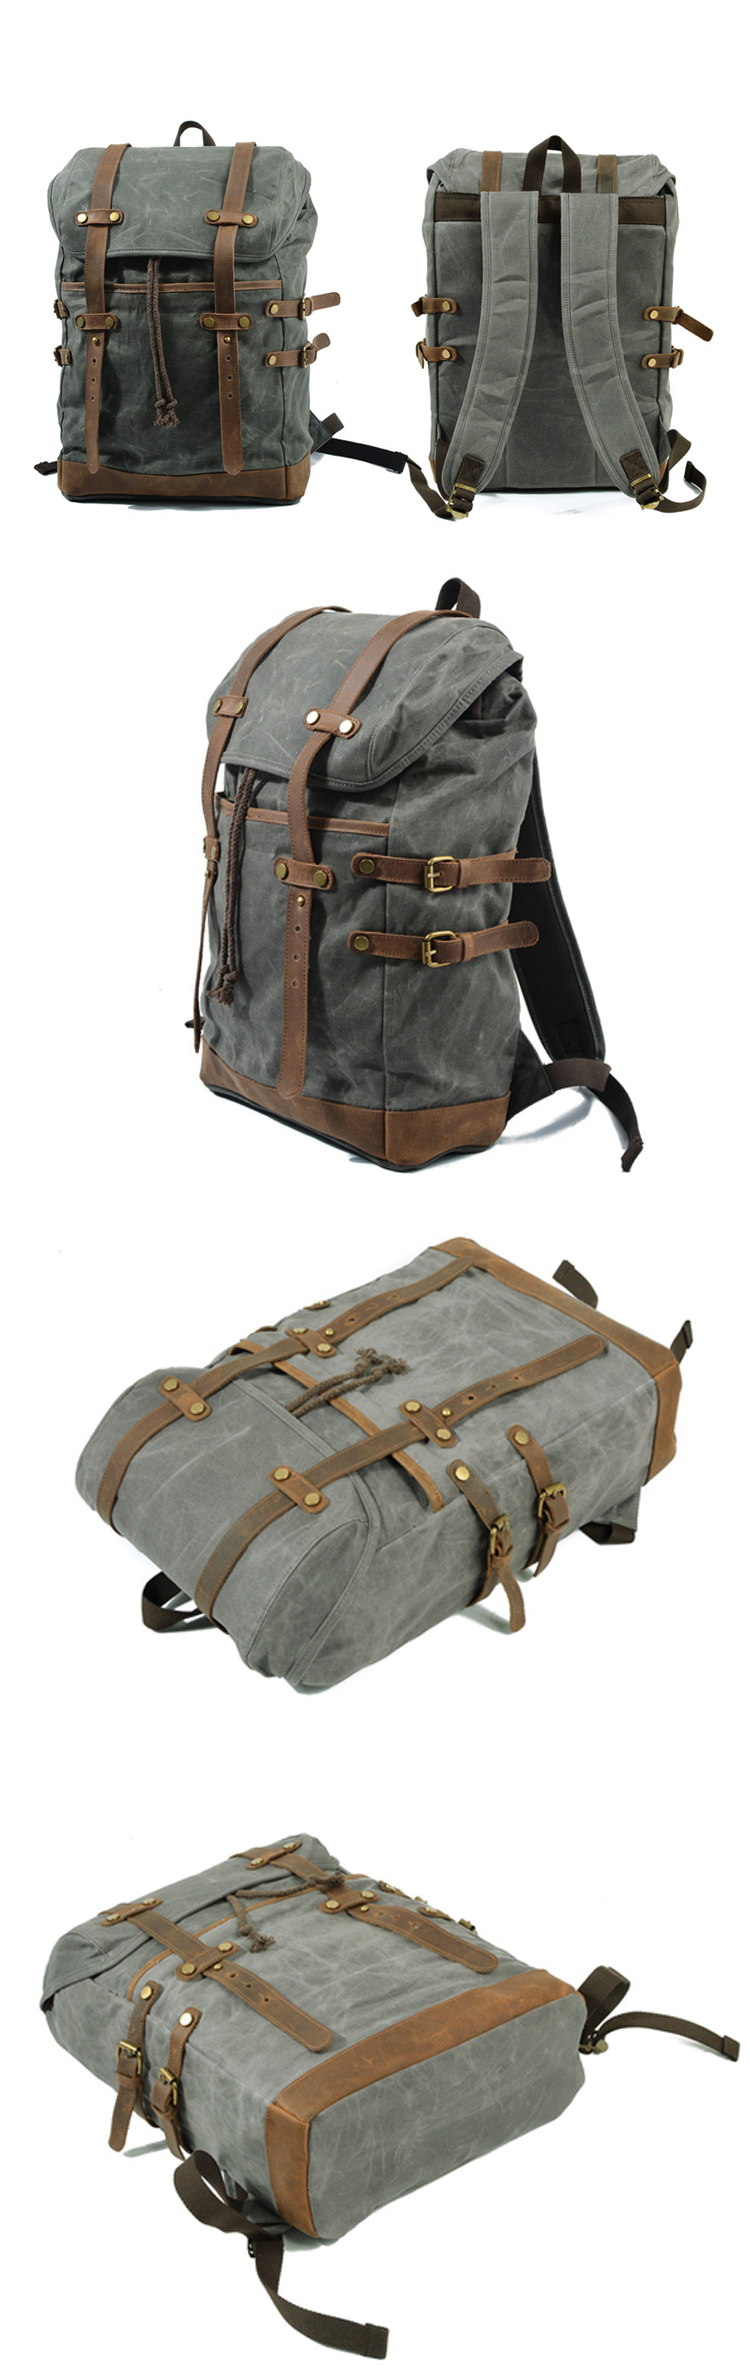 2018 New design waxed retro canvas waterproof causal stylish rucksack bag backpack back pack leather trim